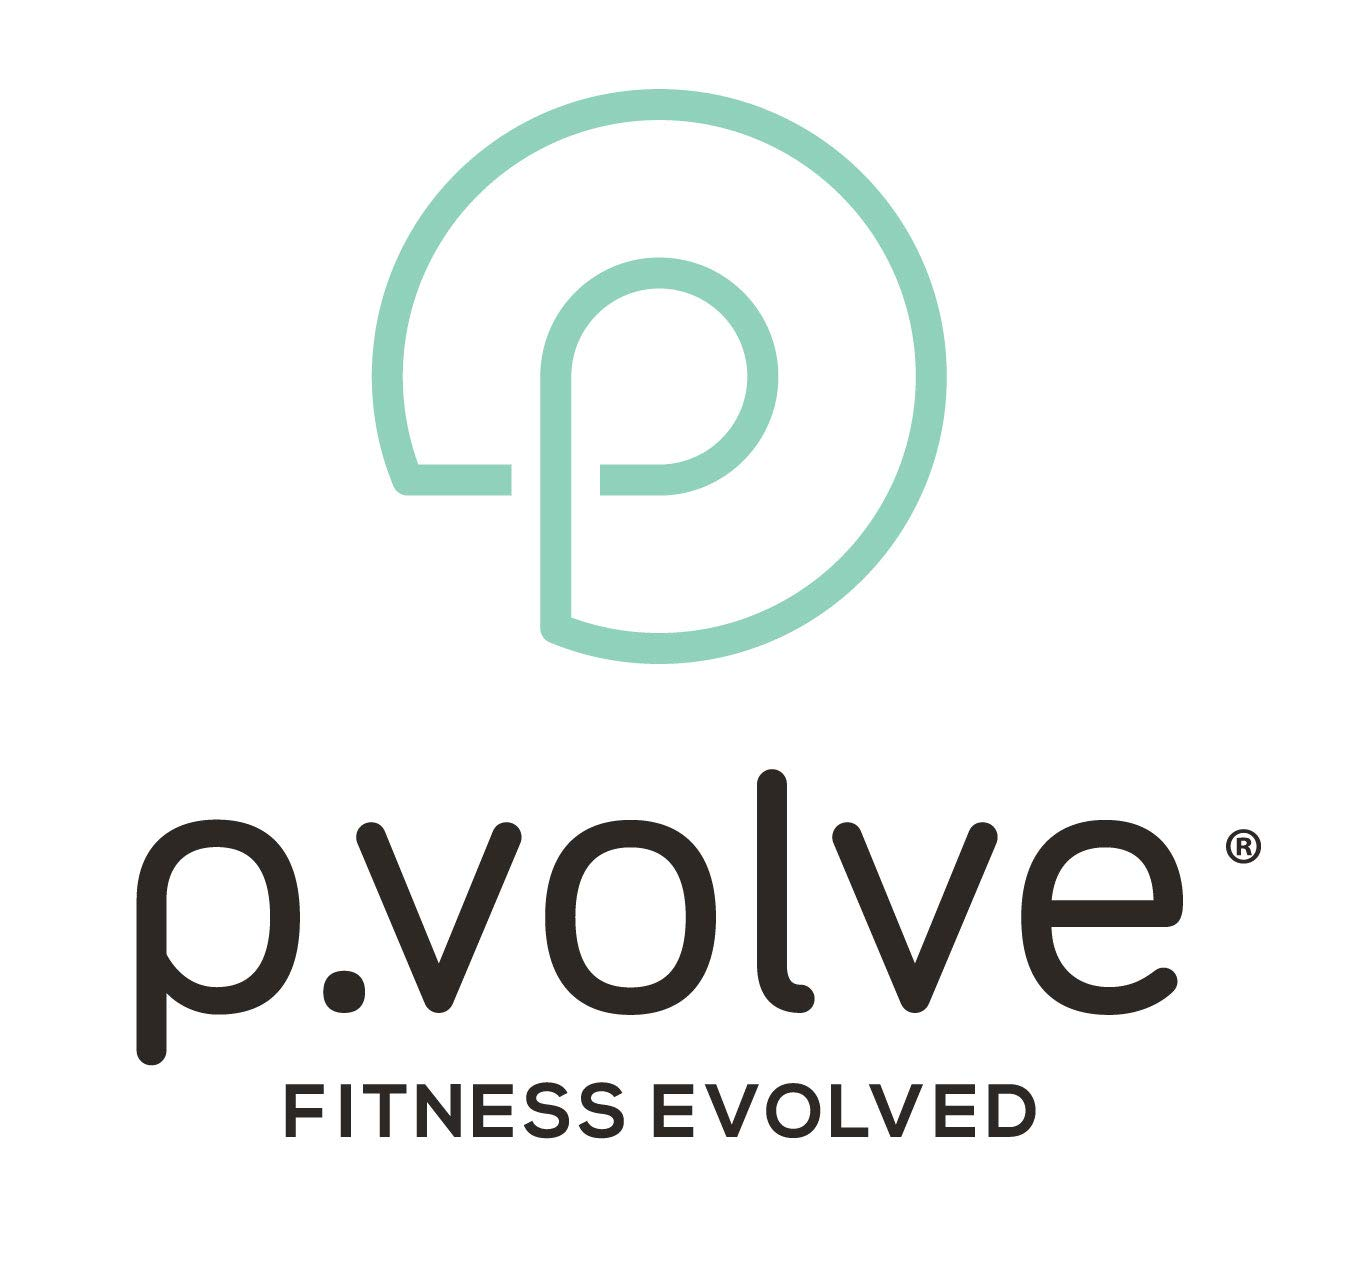 P.volve Full Body Workout Premium Kit - Complete Home Workout Equipment Includes P.Ball & P.Band Set – Women & Men Strength Training Exercise Ball & Resistance Bands for Fit and Sculpted Body (Mint)